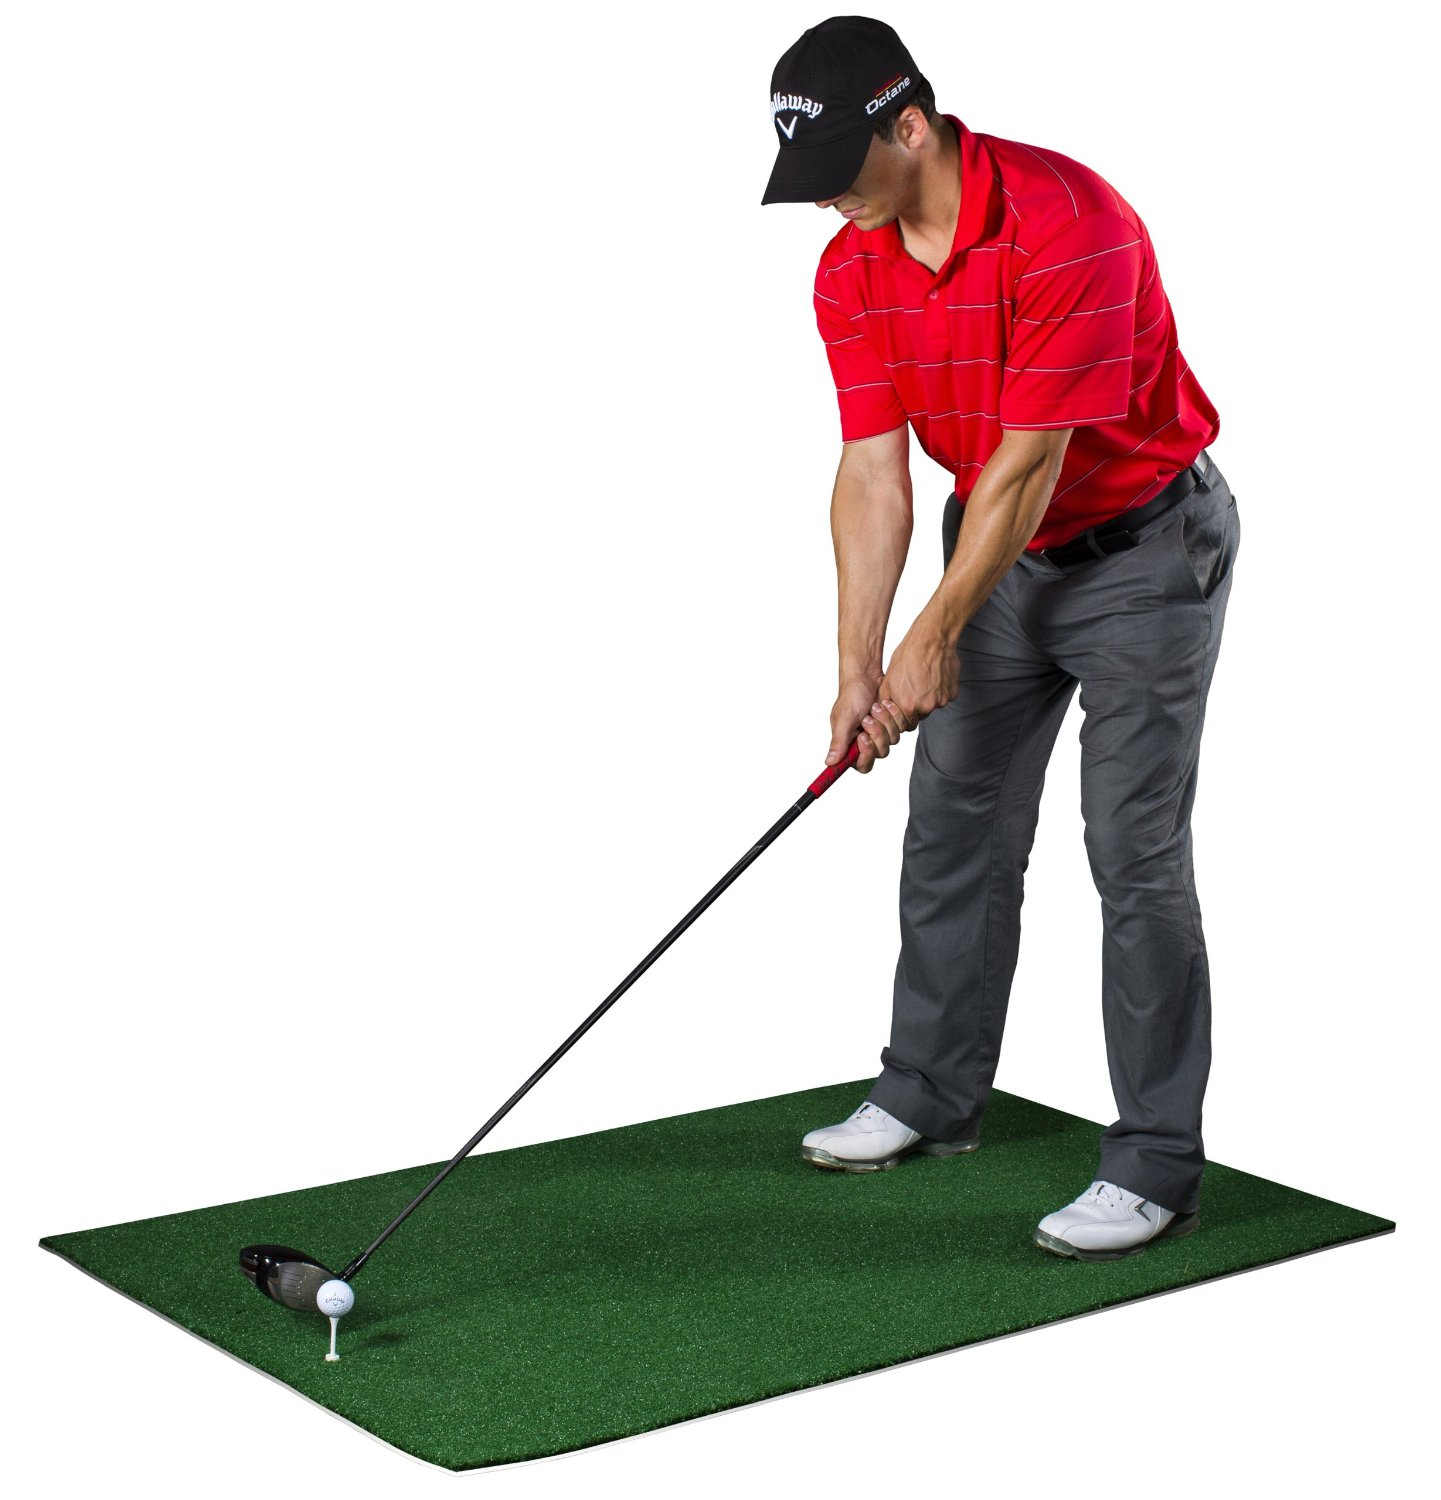 gallery images lie golf cce mat real lessons the mats uneven durapro hitting perfect